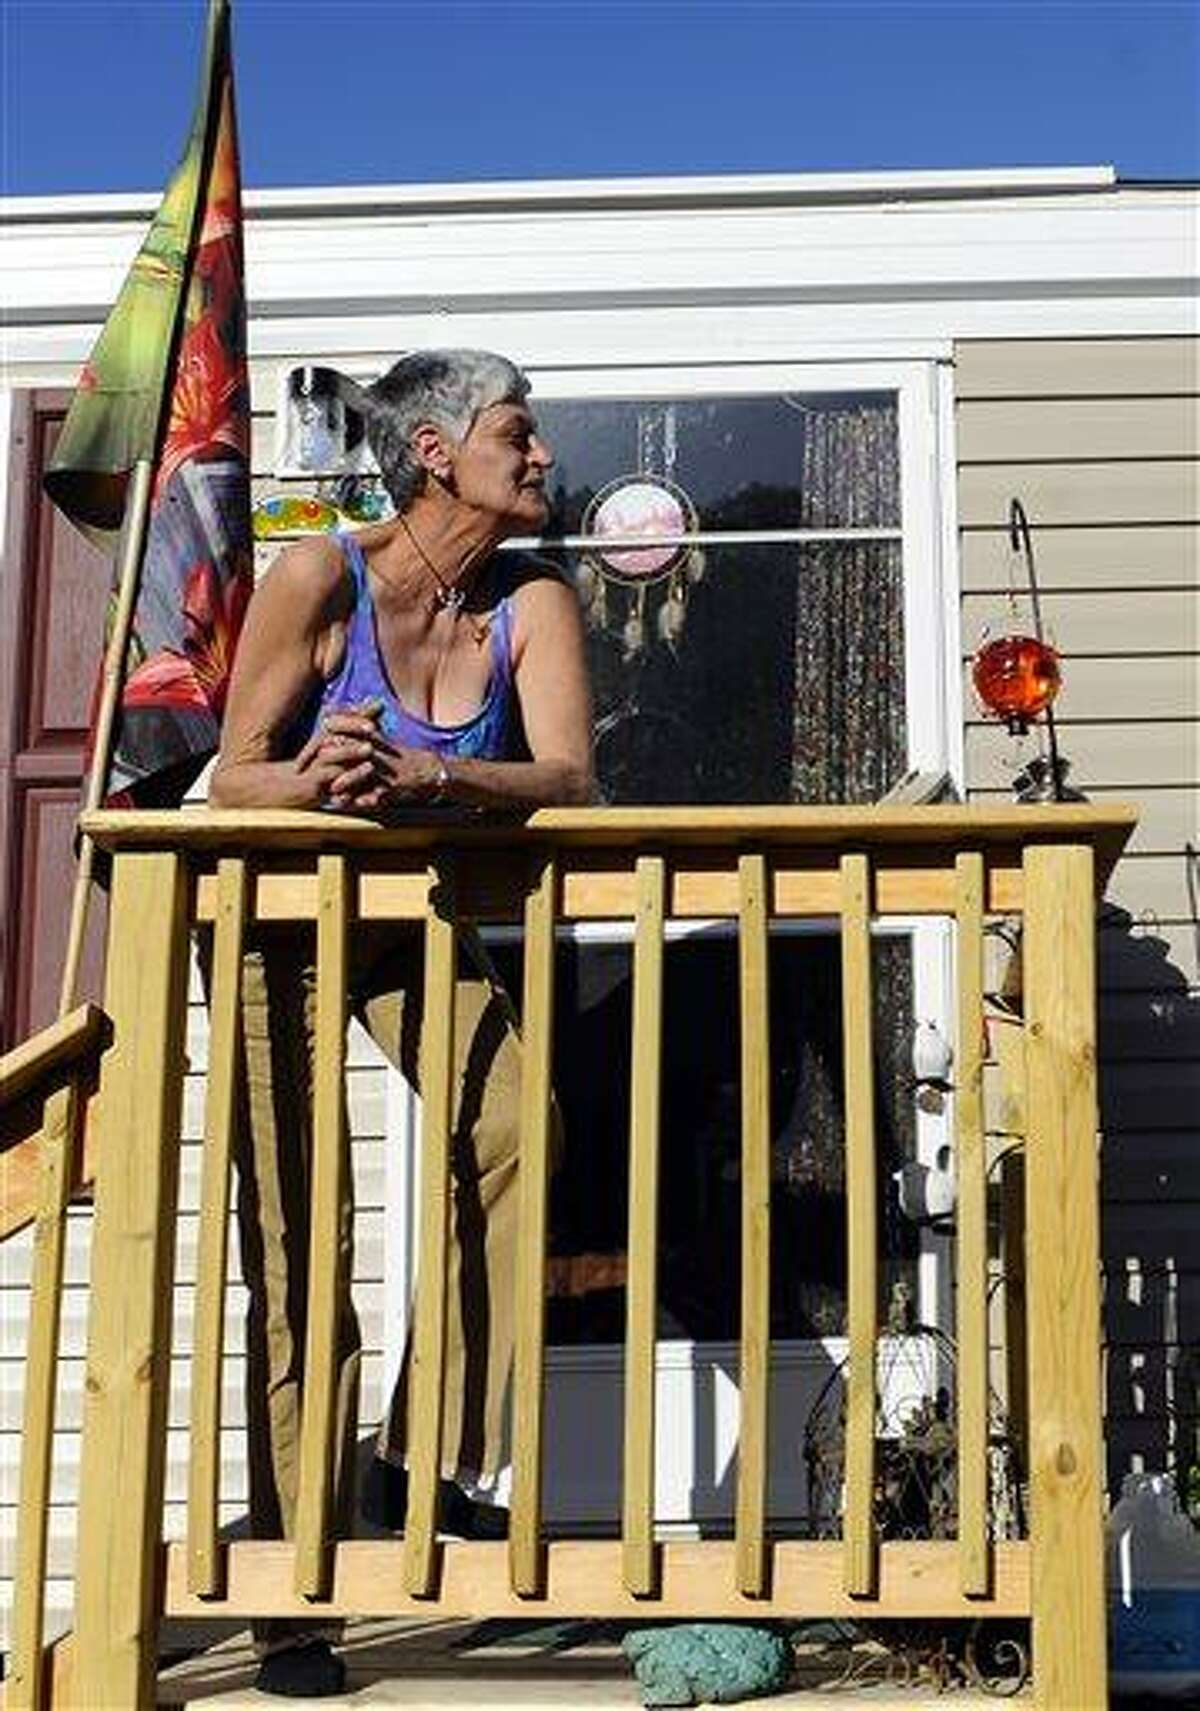 In this Sunday, May 5, 2013 photo, Maryann Daino stands outside her mobile home in New Milford, Conn. Daino is among the people displaced by Superstorm Sandy who were provided temporary housing at a makeshift mobile home park set up by former New Yorkers at Faith Church. (AP Photo/Jessica Hill)